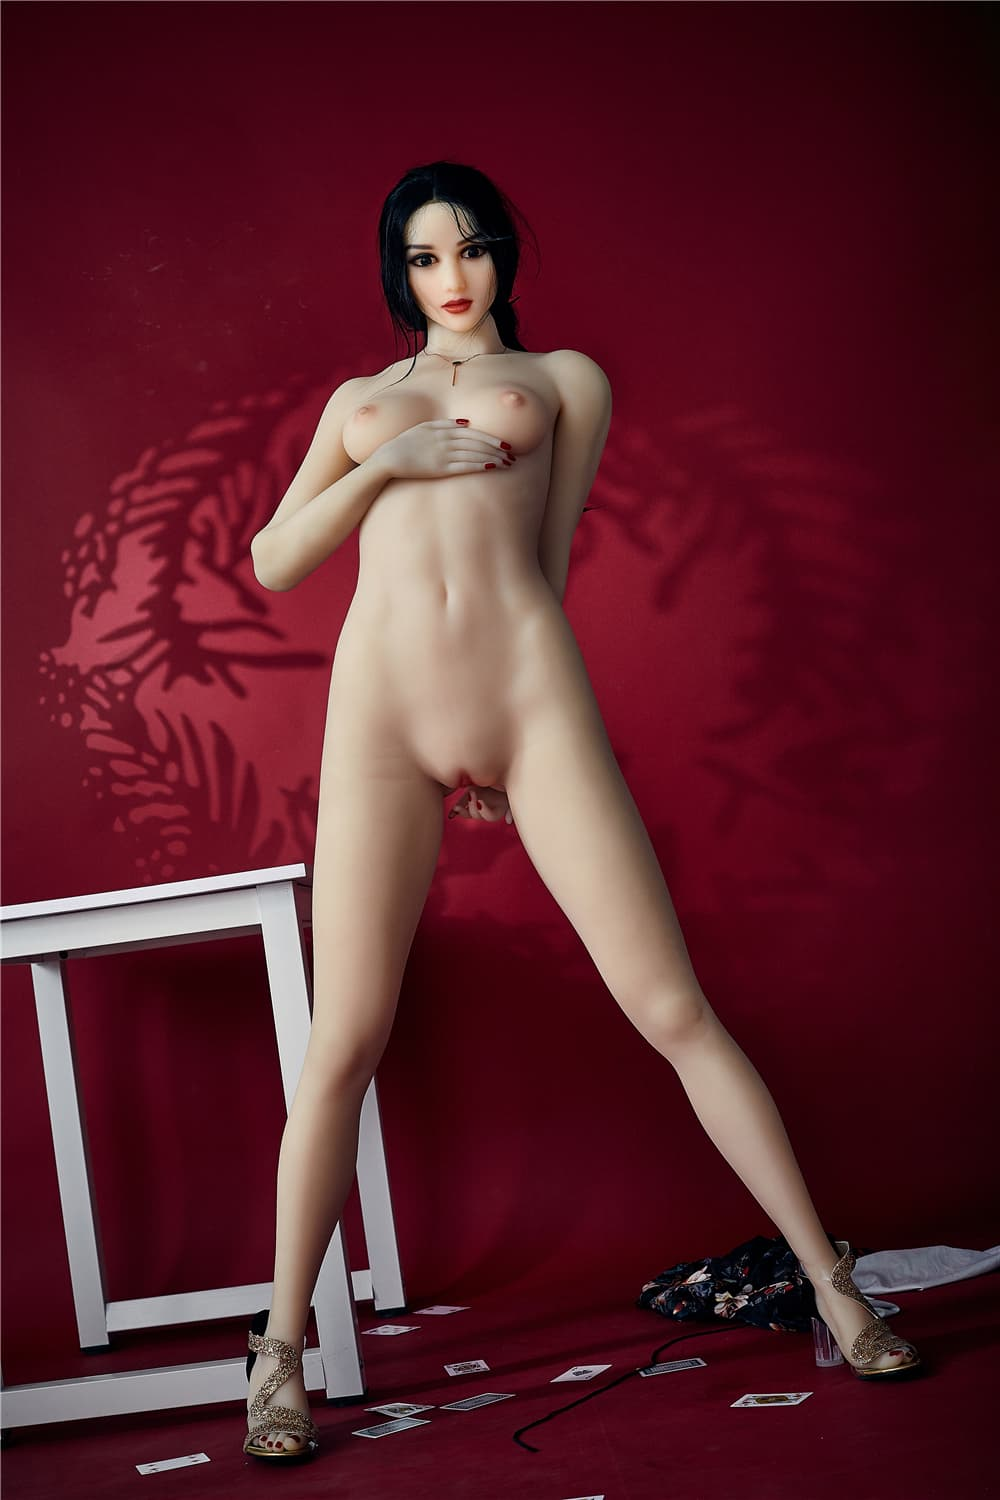 bonita 168cm black hair athletic flat chested tpe sex doll(12)